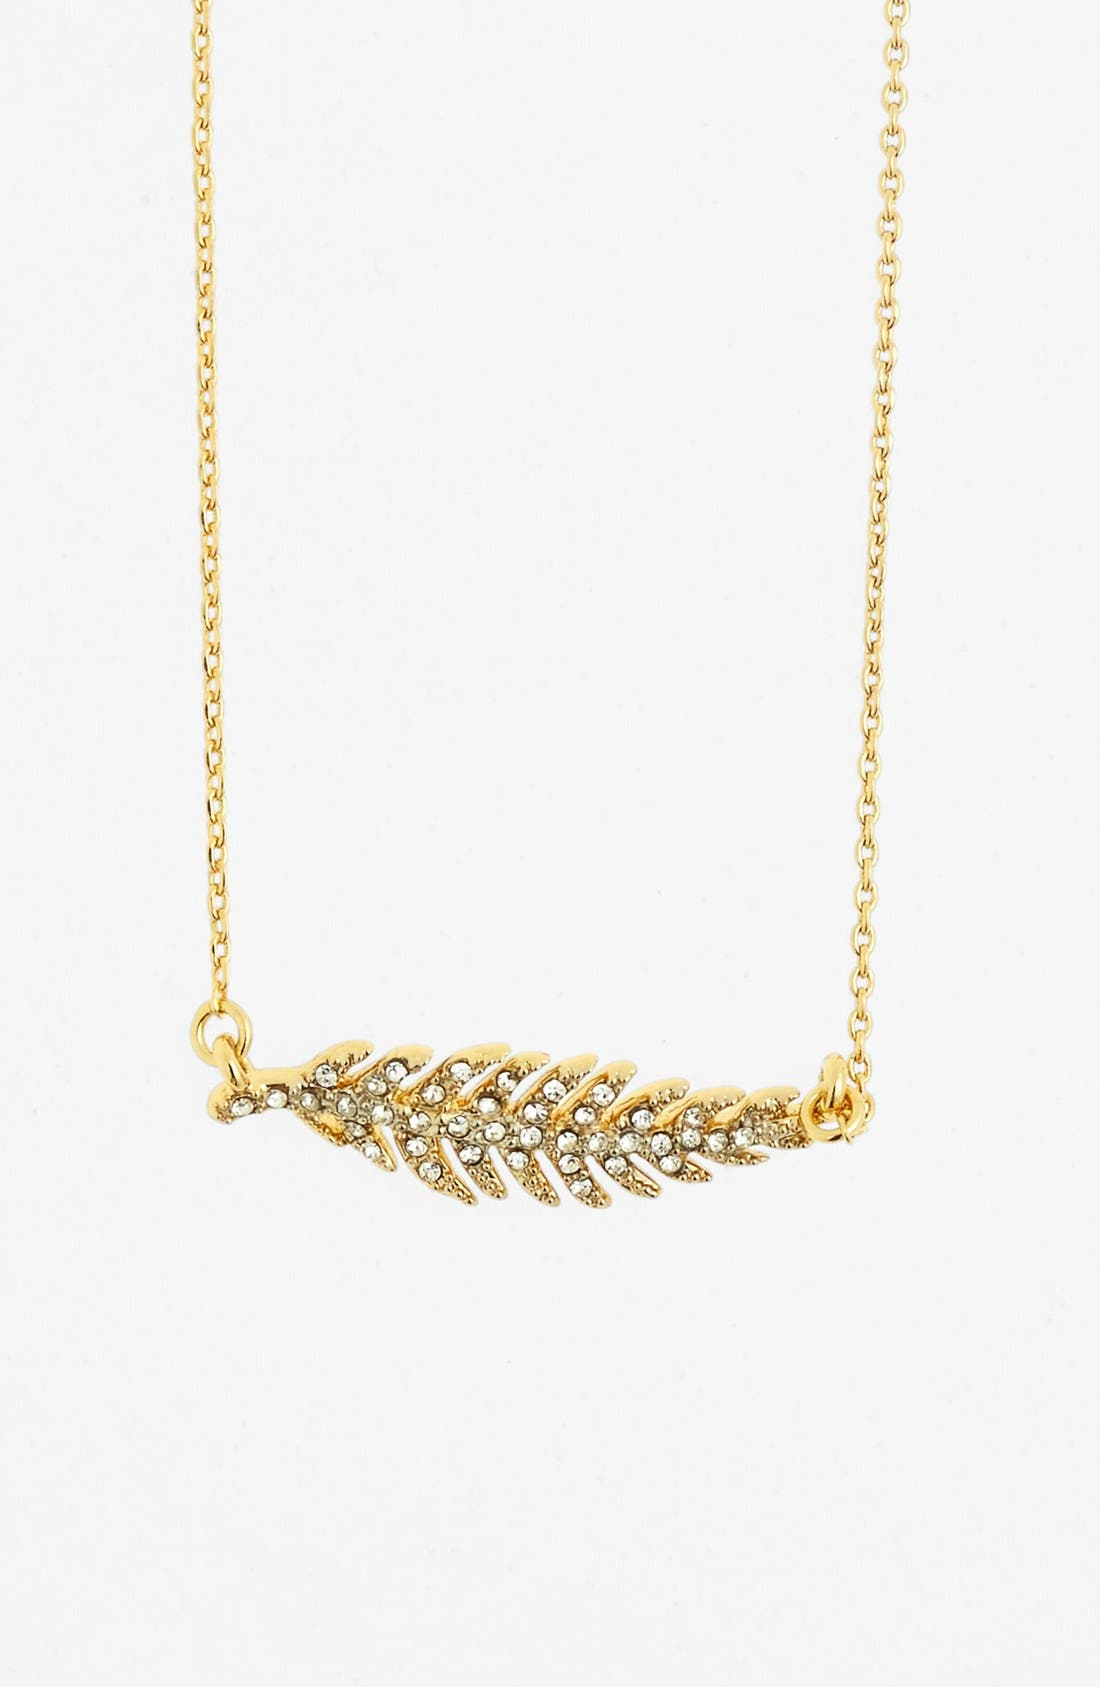 Main Image - Juicy Couture 'Juicy in Bloom' Pavé Feather Pendant Necklace